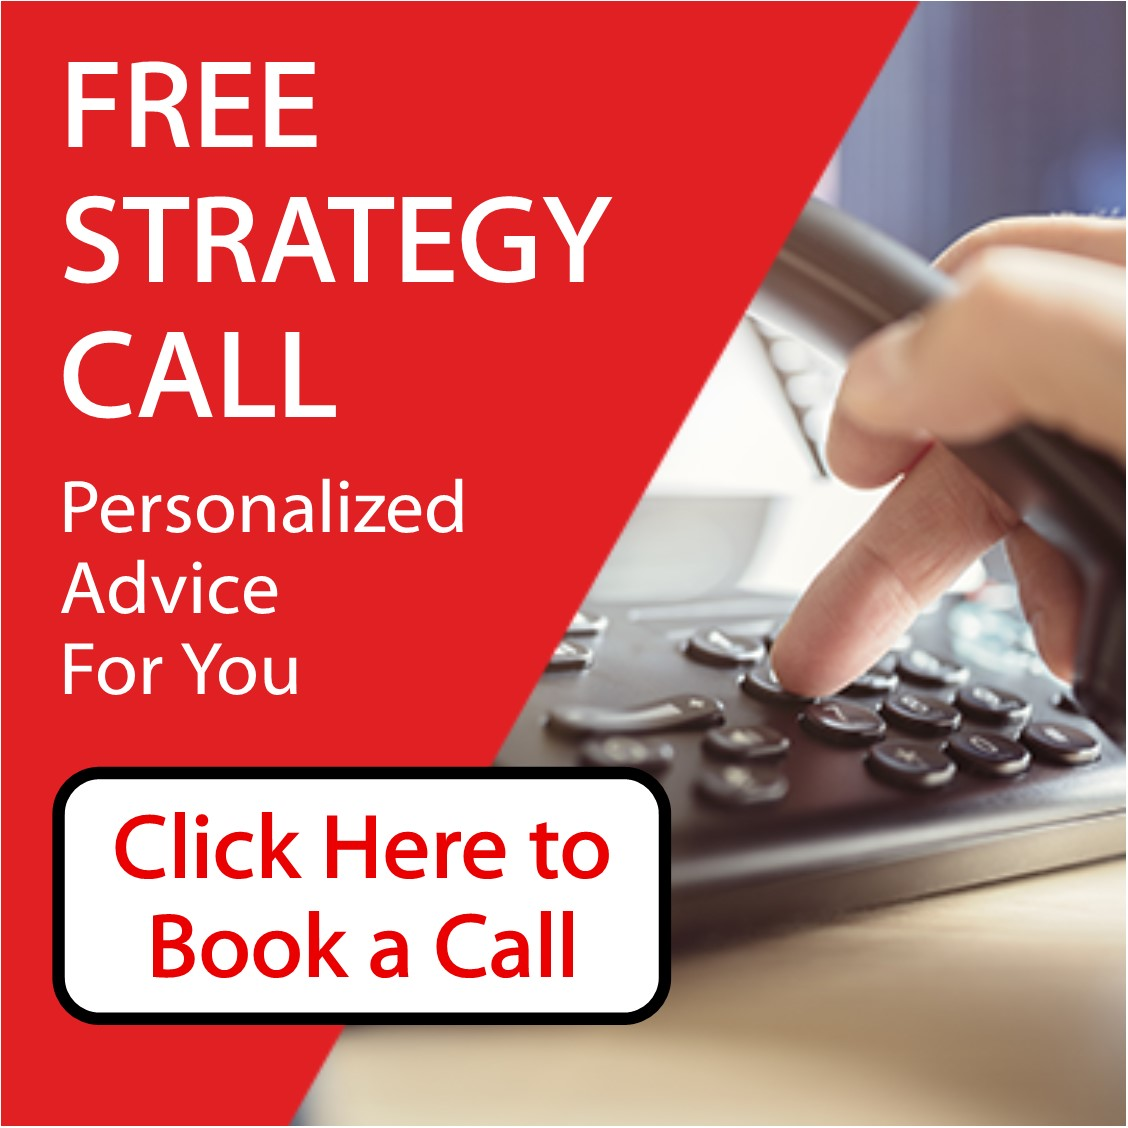 FREE STRATEGY CALL